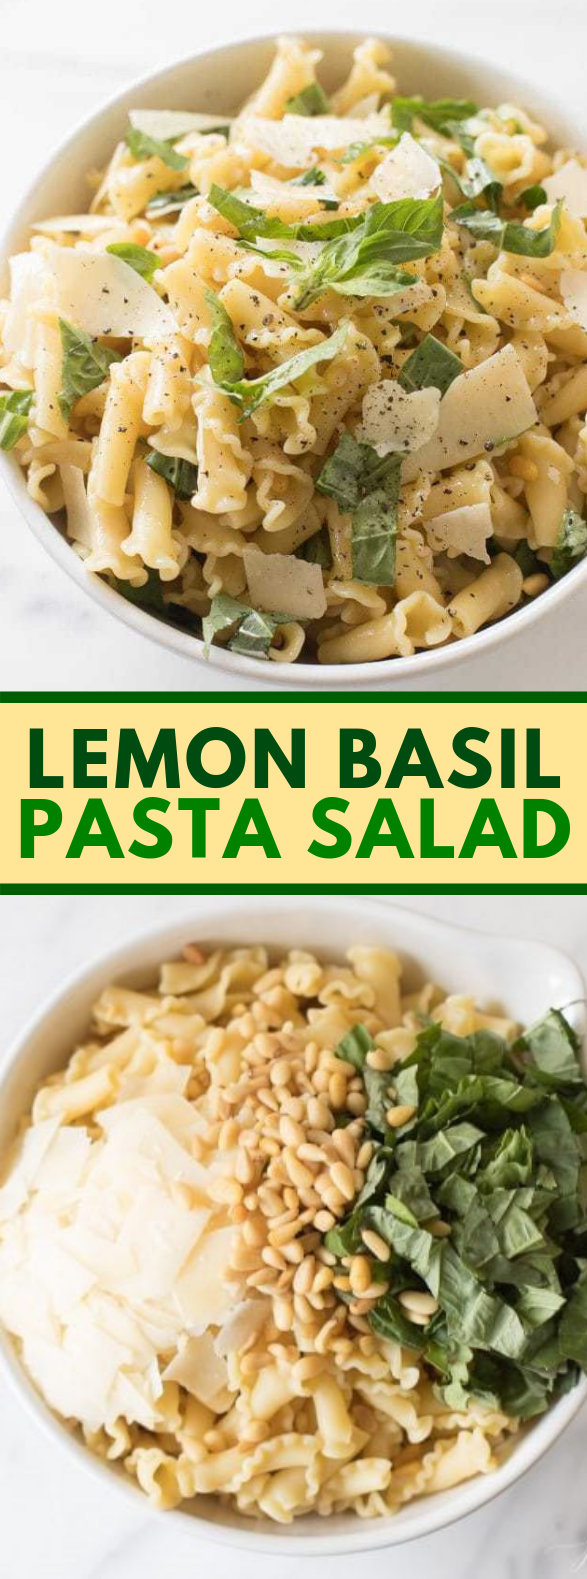 Photo of Basil Lemon Pasta Salad #dinner #lunch